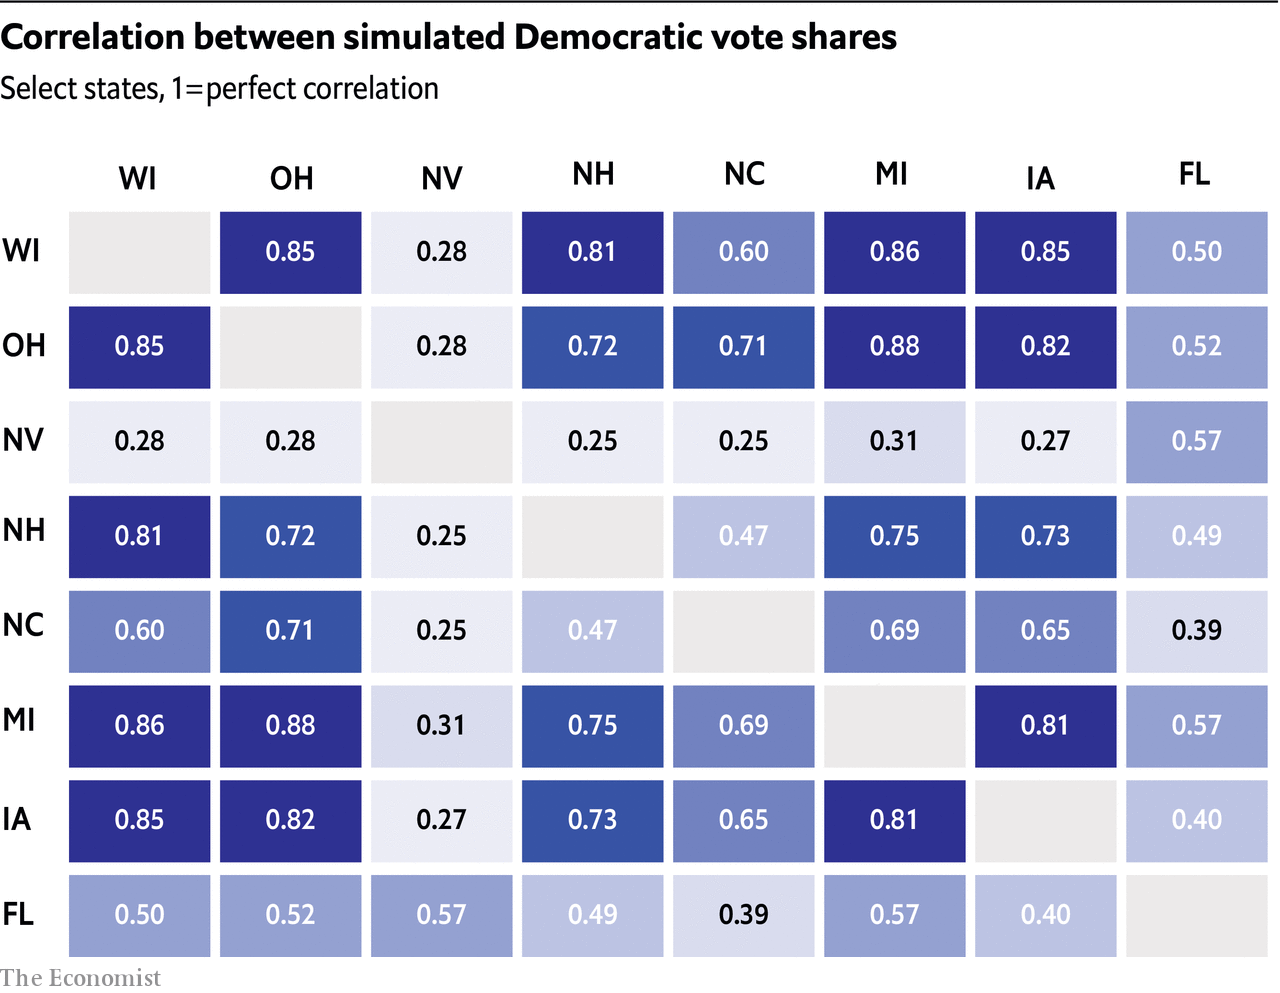 Correlation between simulated Democratic vote shares